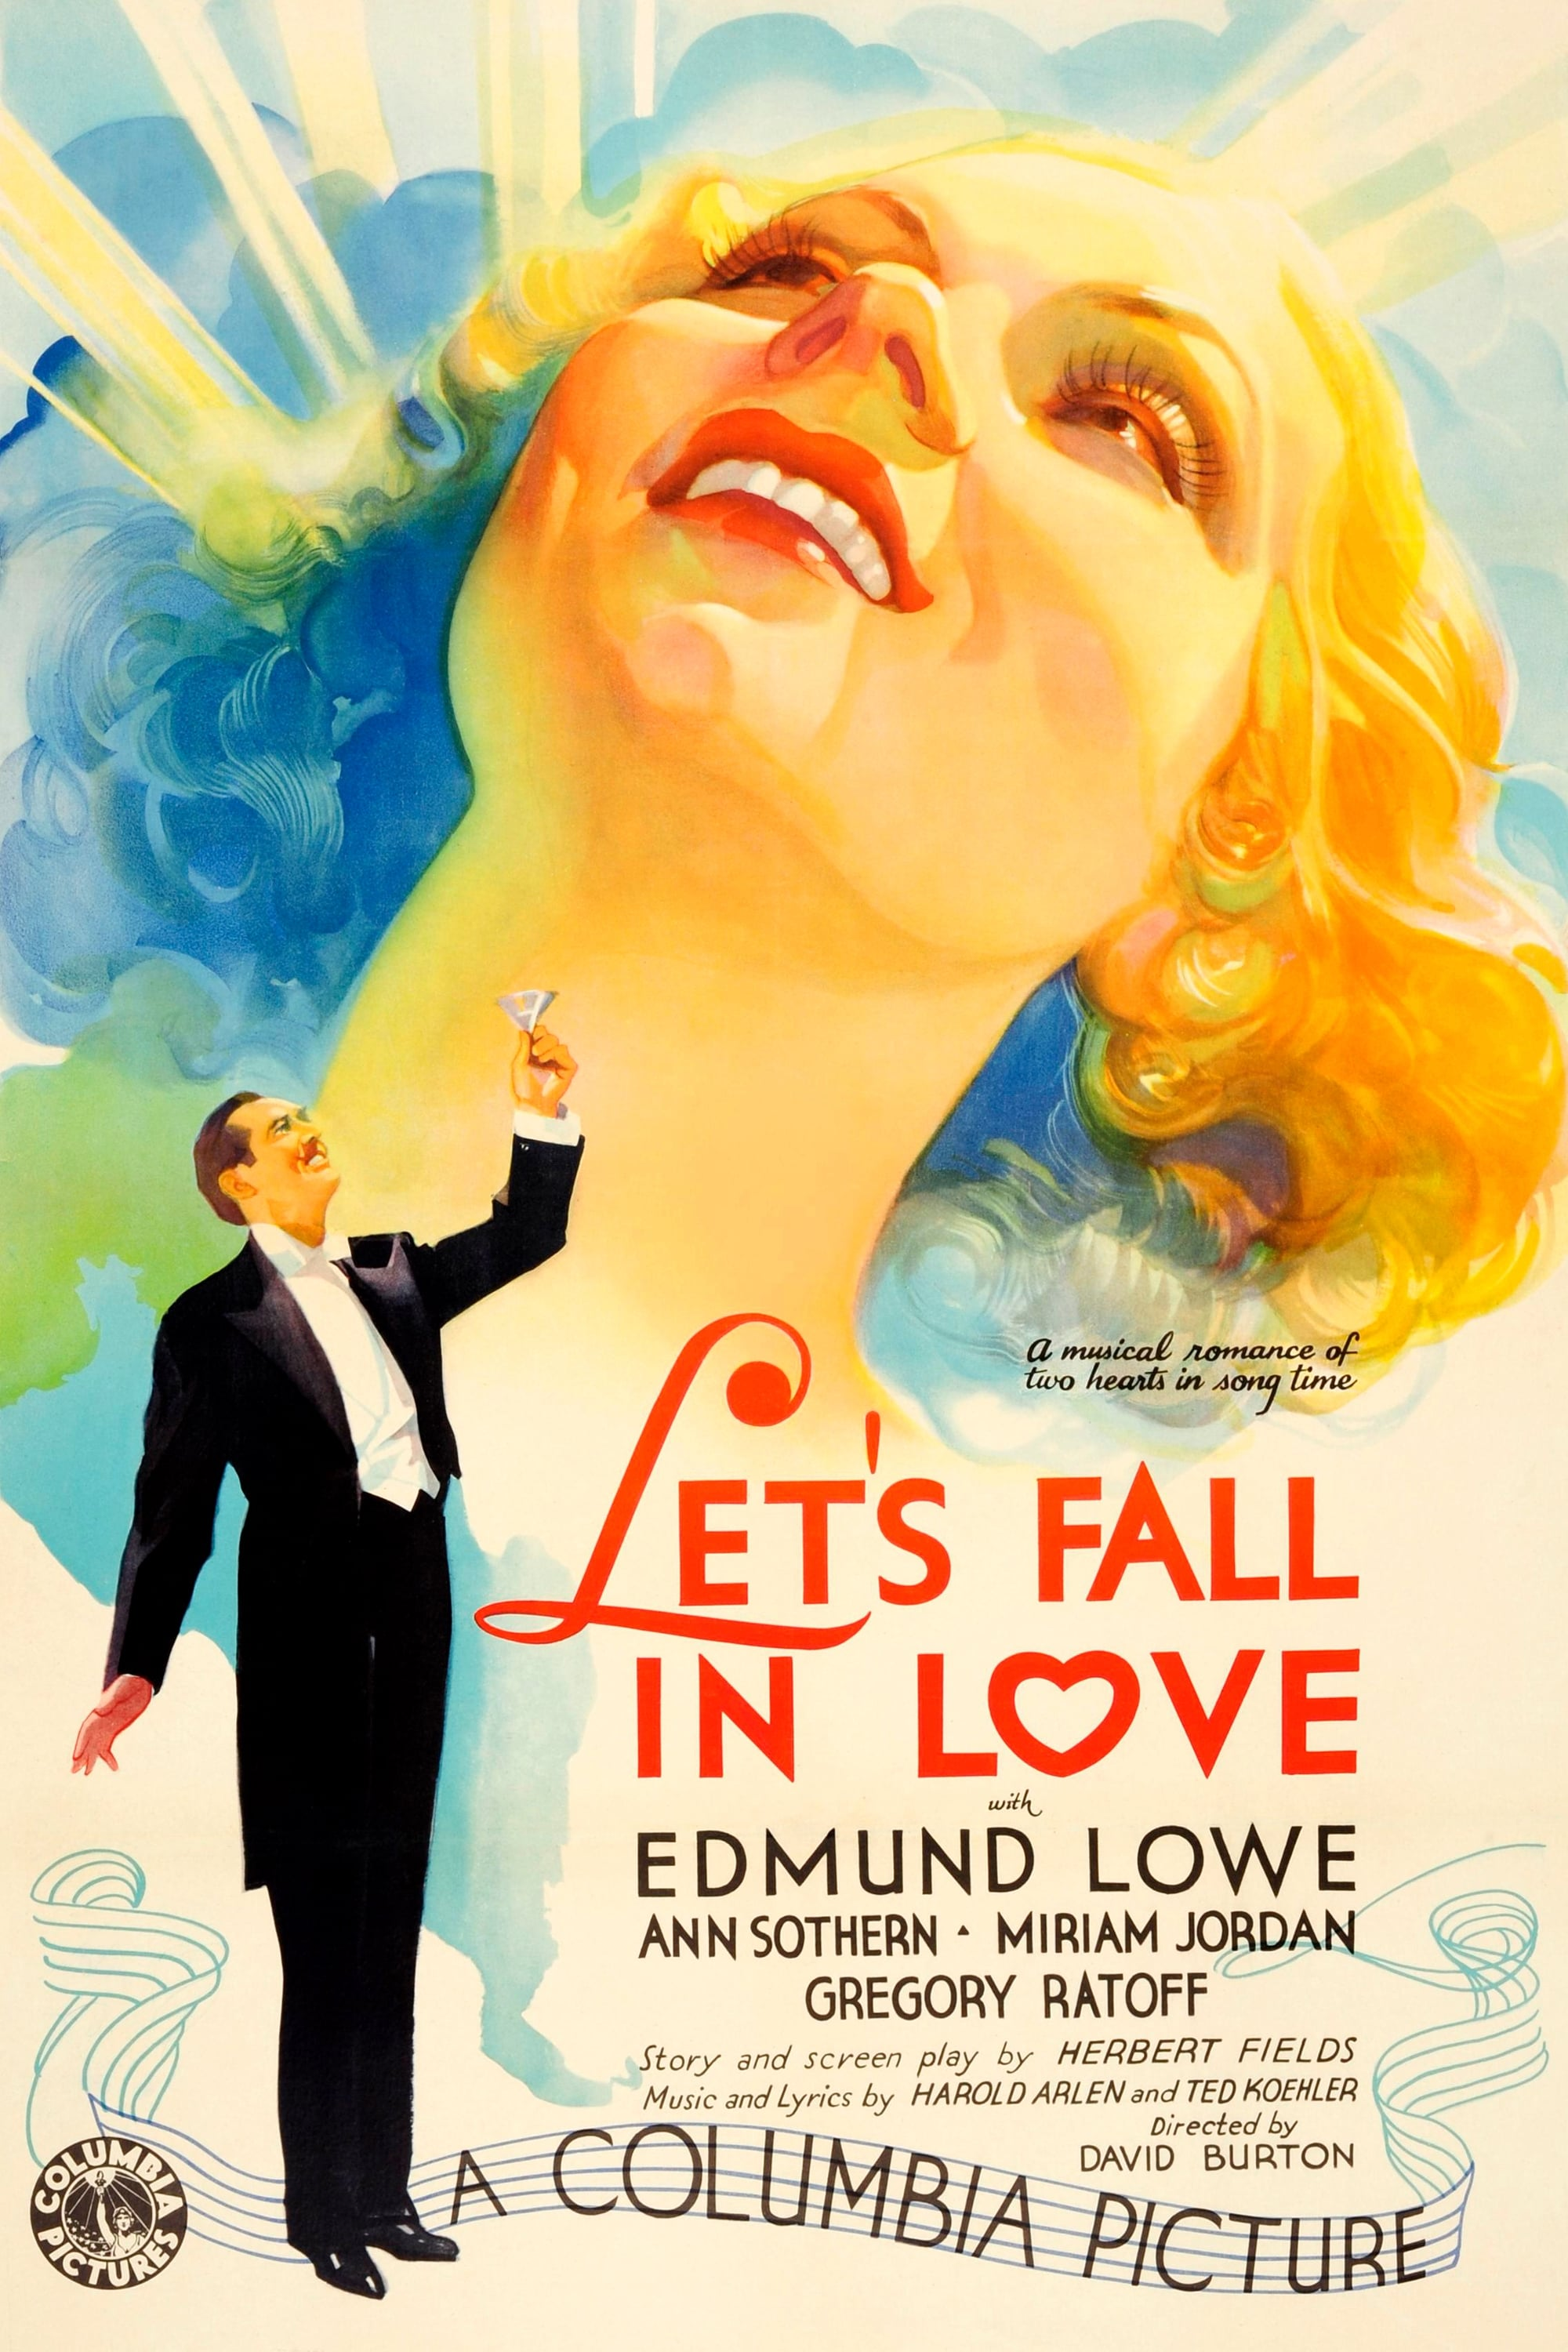 Let's Fall in Love (1933)